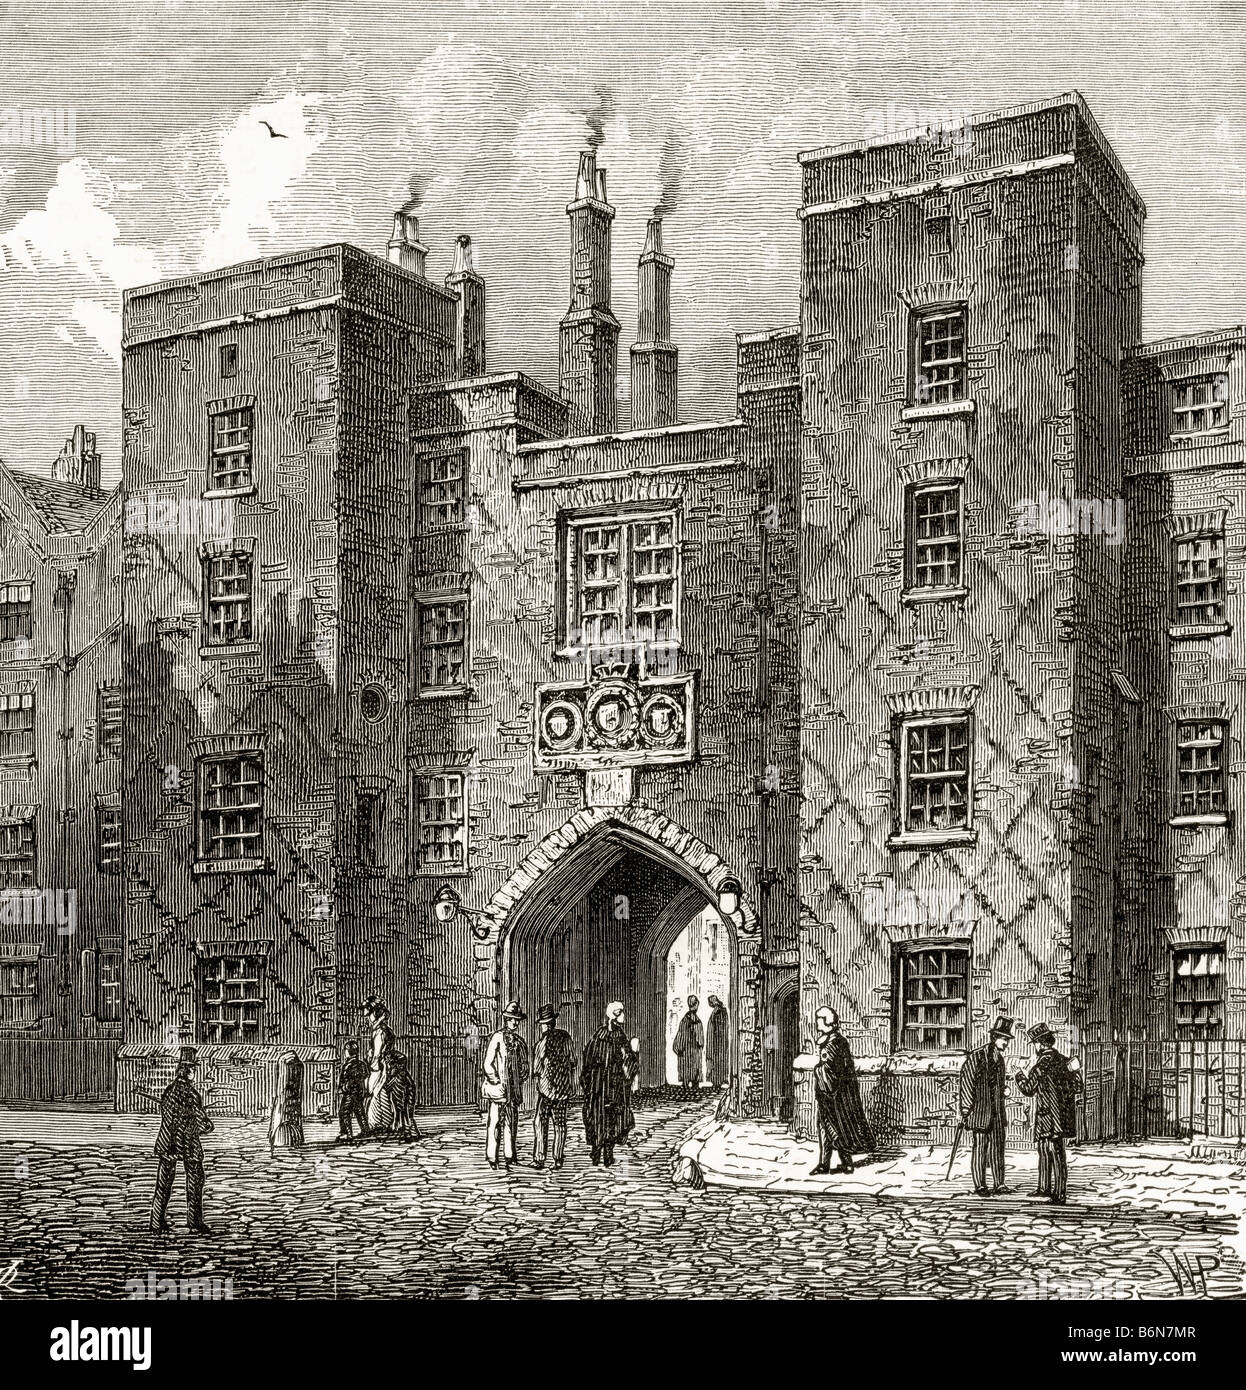 The Chancery Lane Gate of Lincolns Inn One of four Inns of Court London England - Stock Image